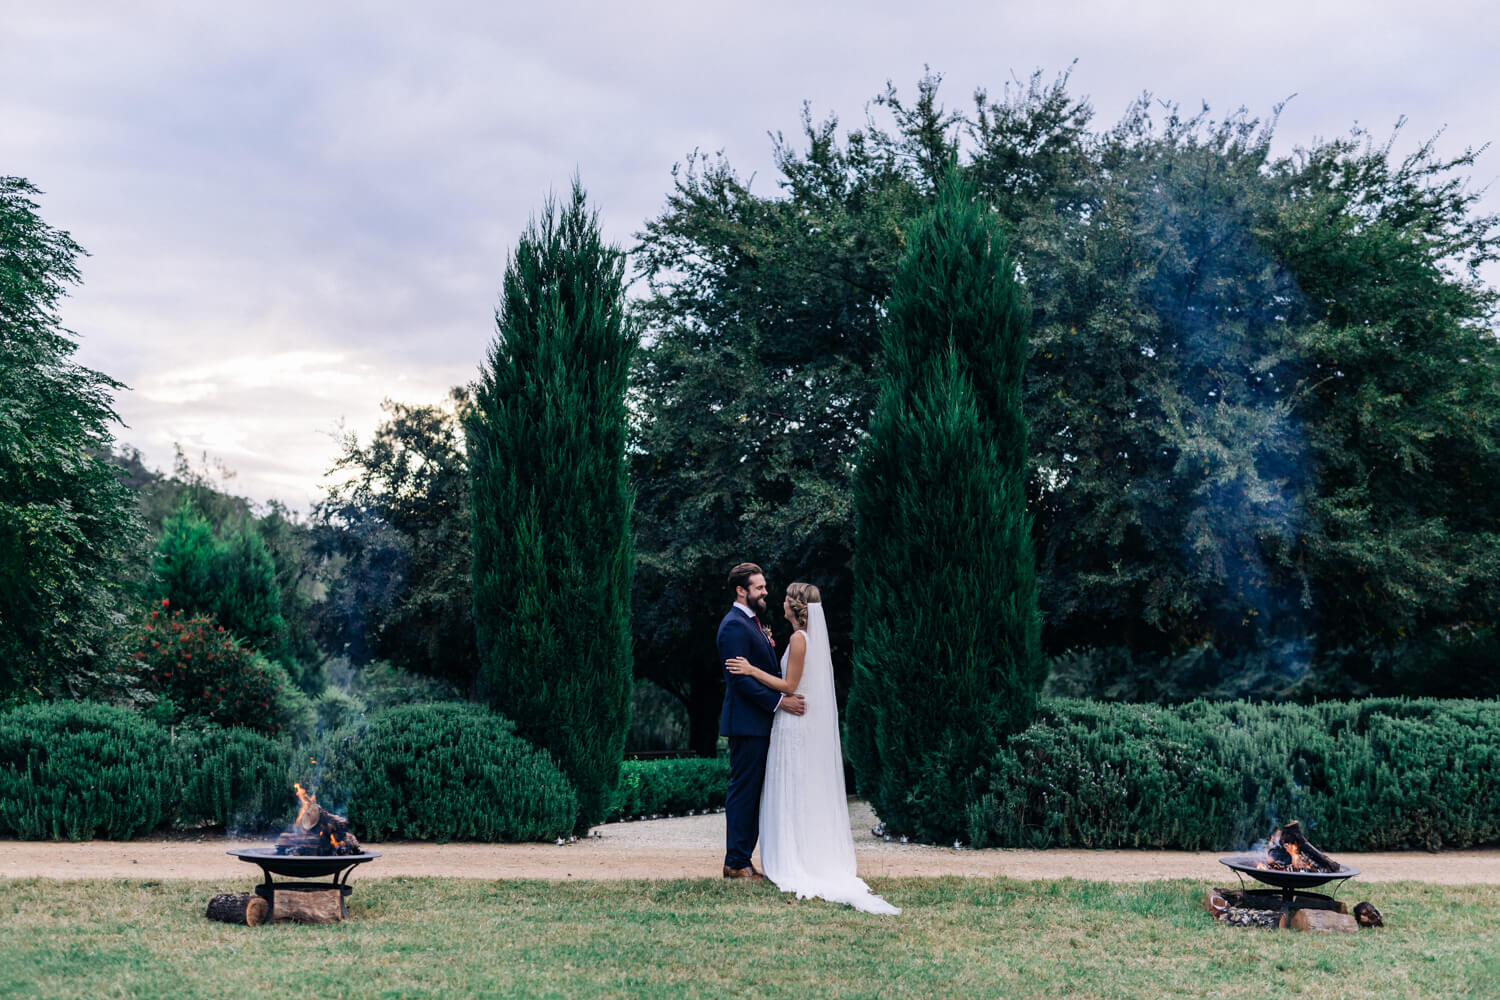 hunter valley wedding photographer bride and groom hug in gardens at sunset